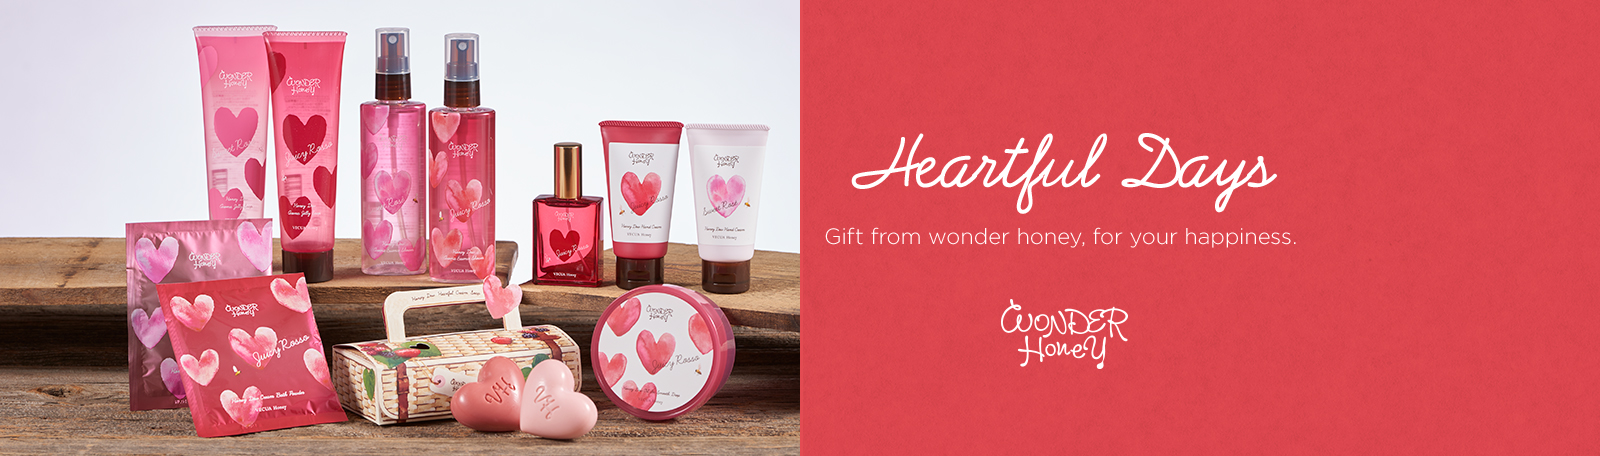 Heartful Days Gift from wonder honey, for your happiness. - WONDER Honey